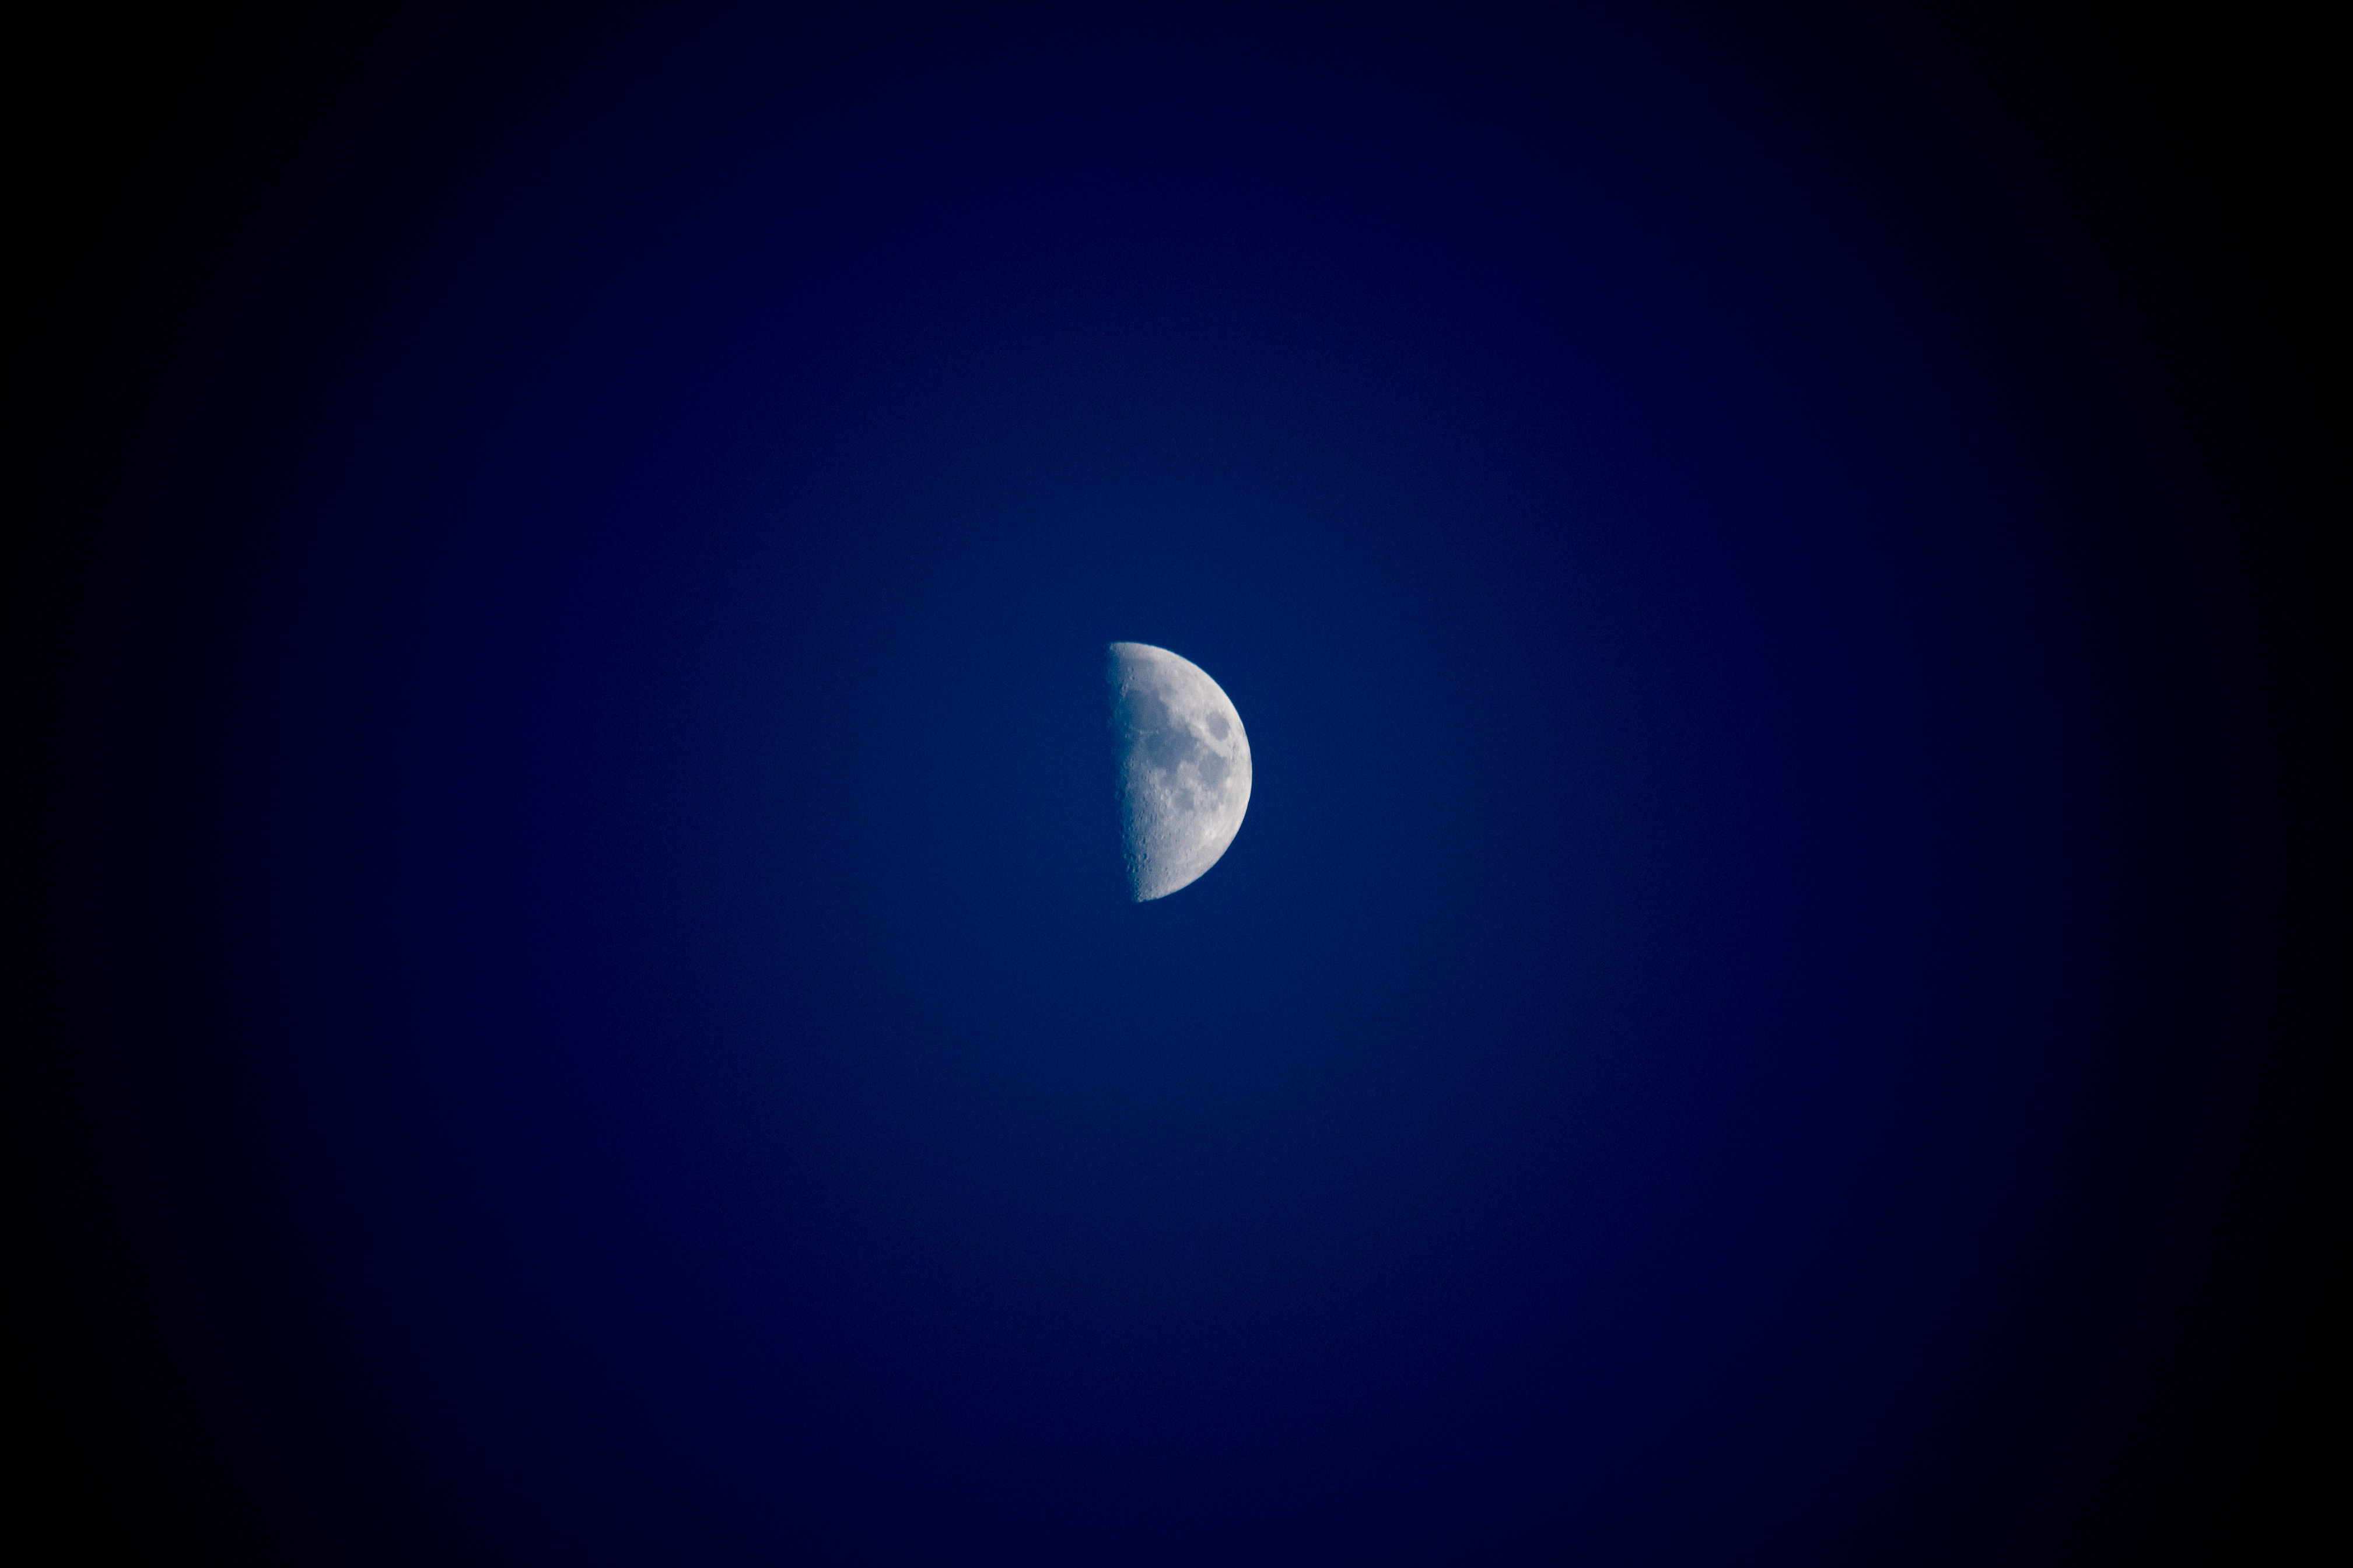 Pale half-moon against a blue background with strong vignetting